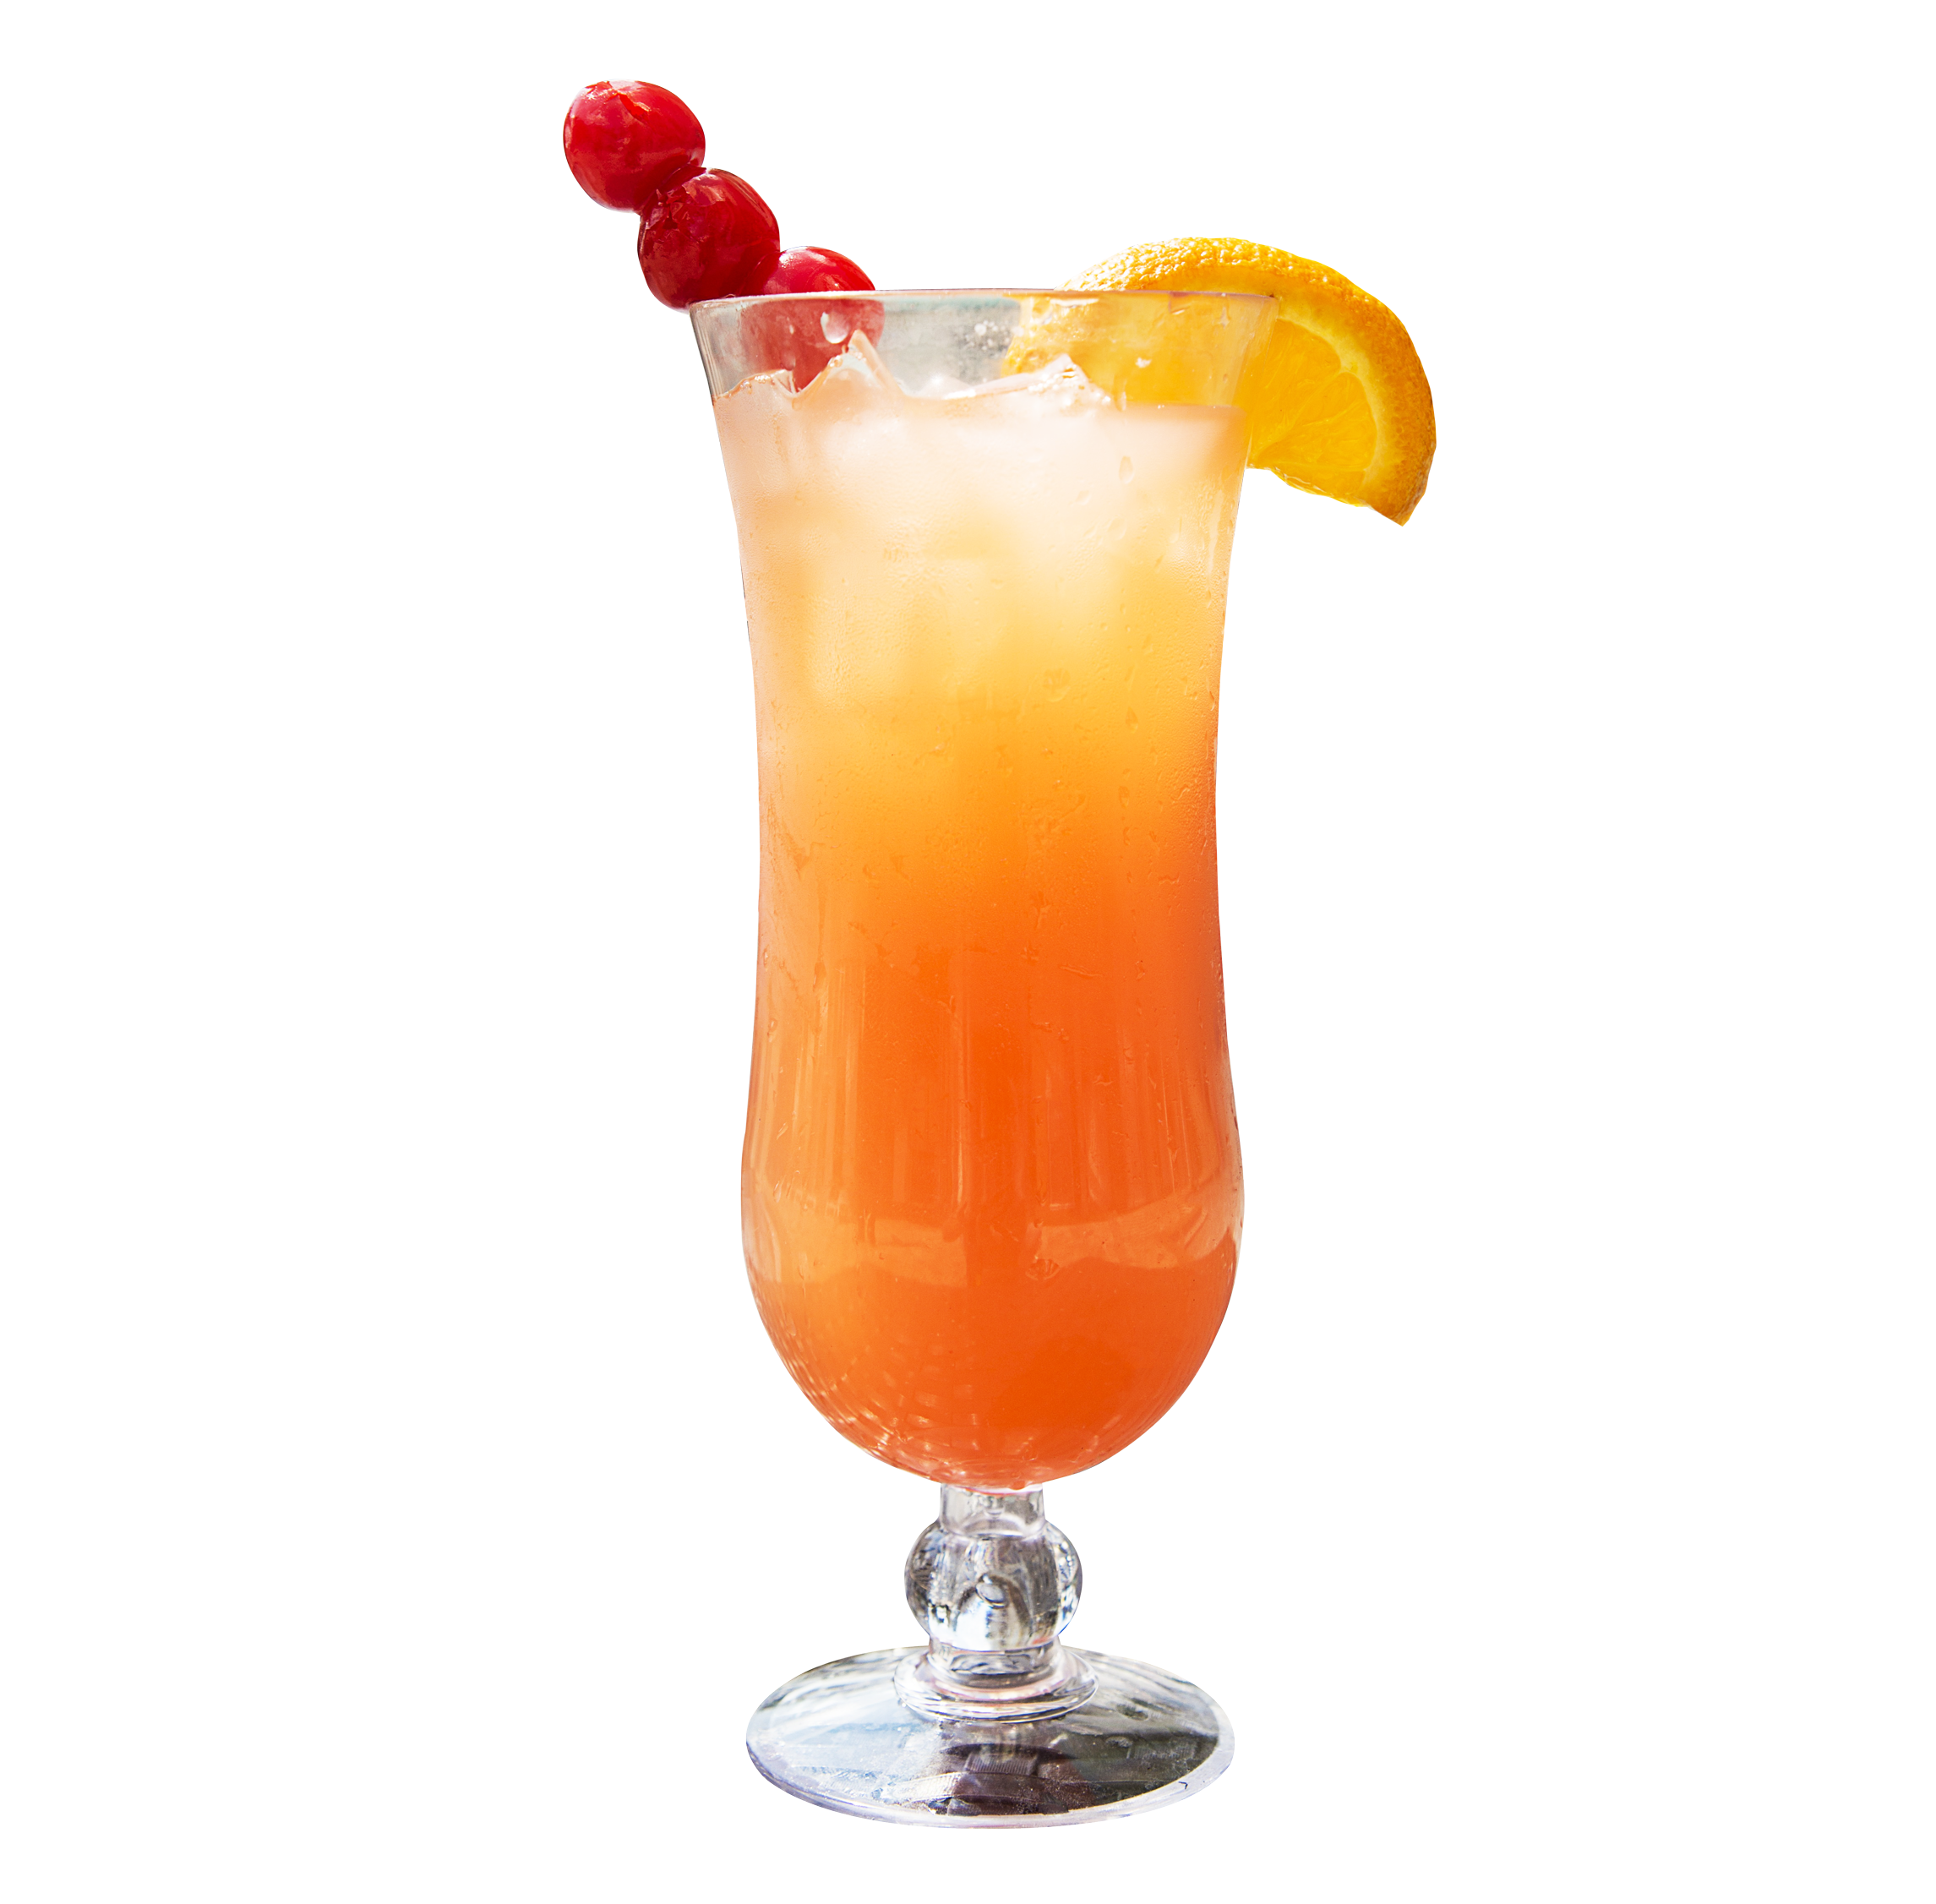 Cocktail glass png transparent. Drink clipart punch drink